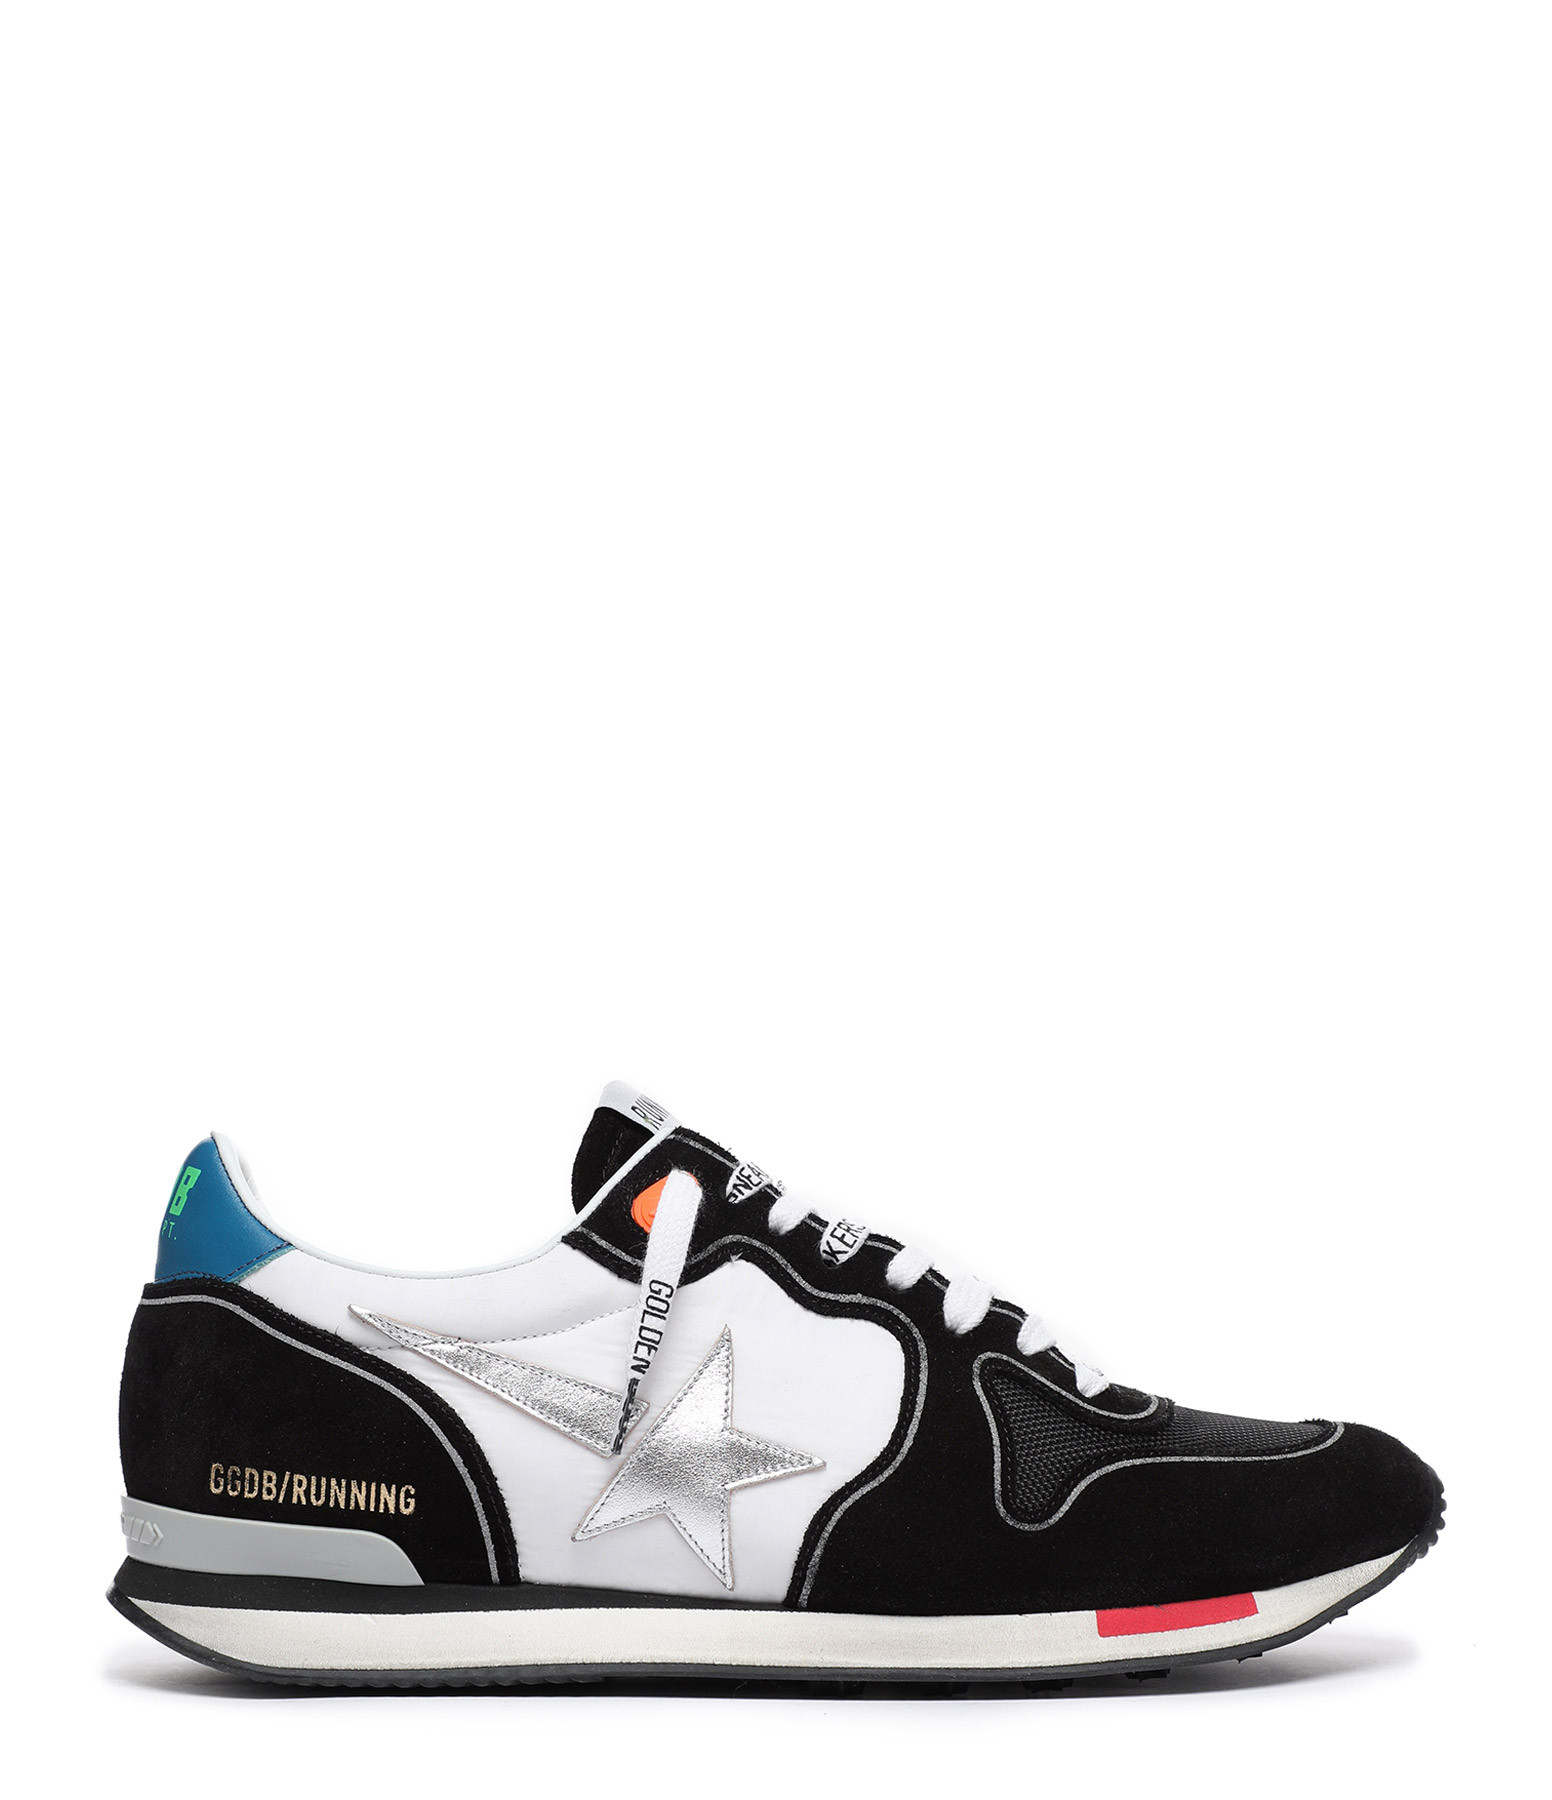 GOLDEN GOOSE - Baskets Homme Running Nylon Noir Blanc